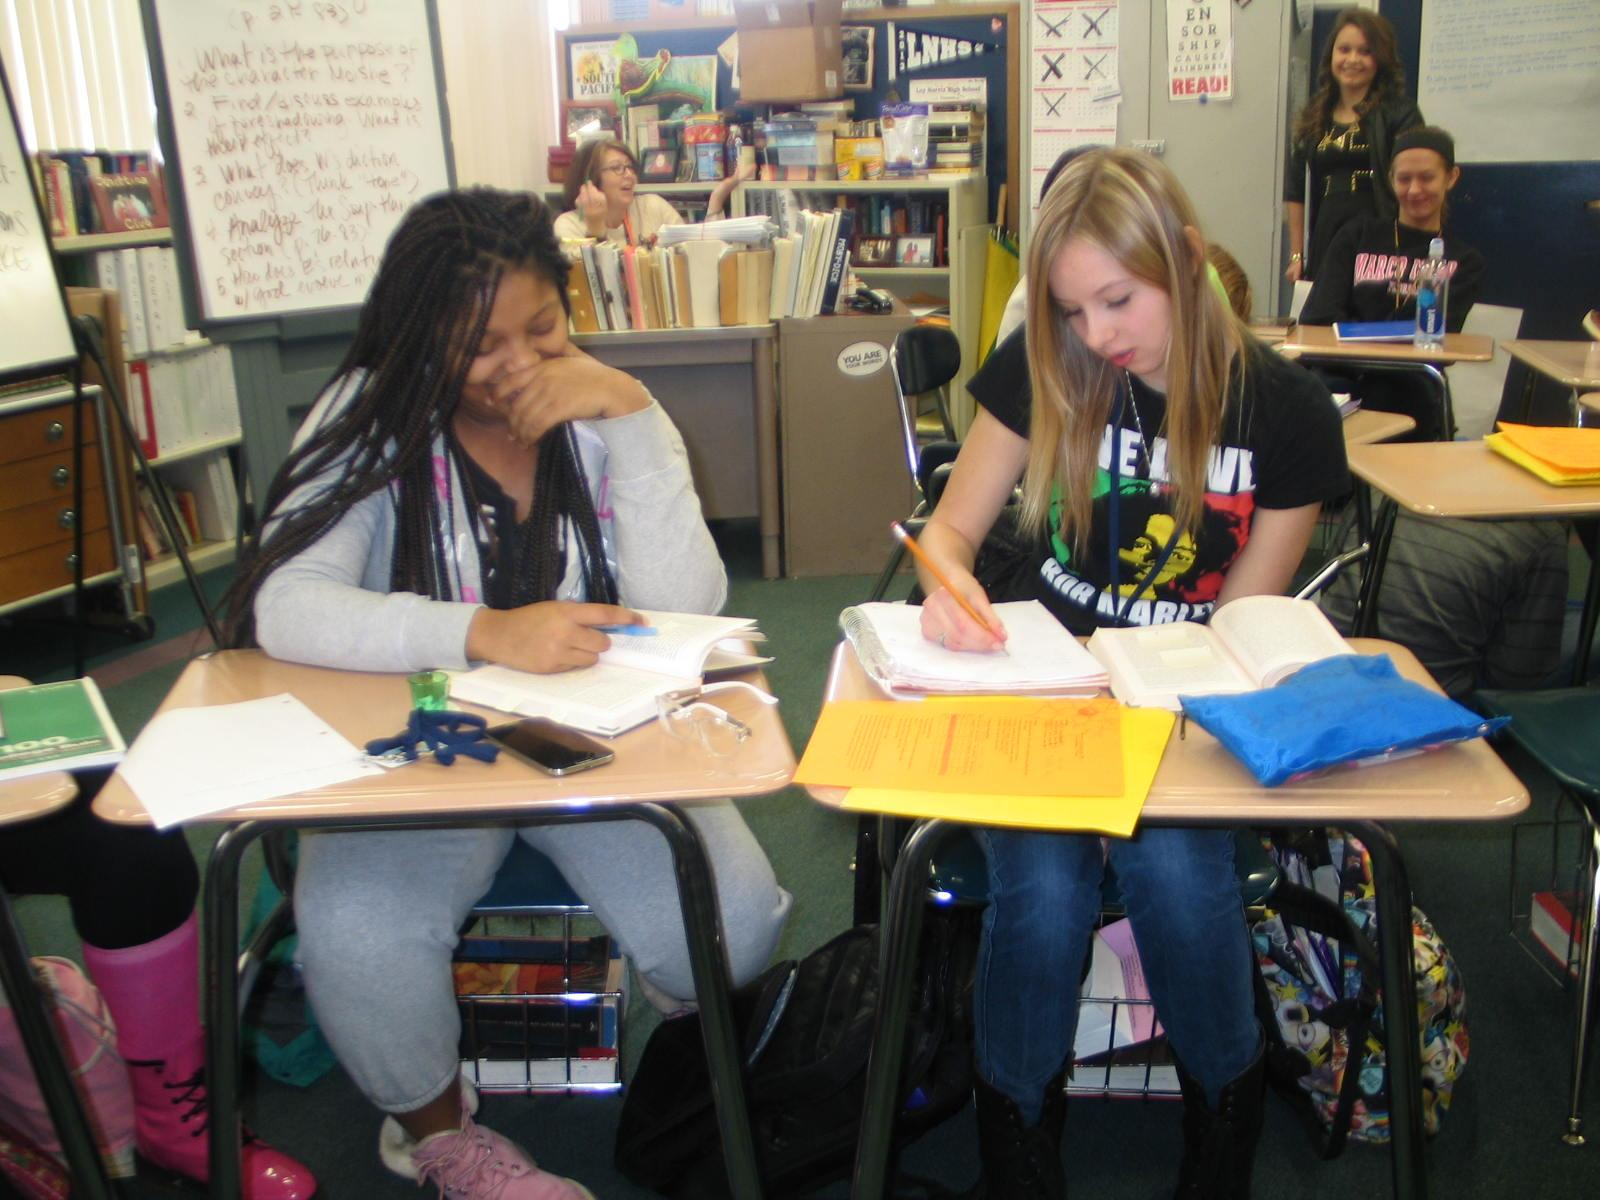 Caitlin Commissaris works hard in Ms. Lewis's class. Loy Norrix High School has a great level of diversity.